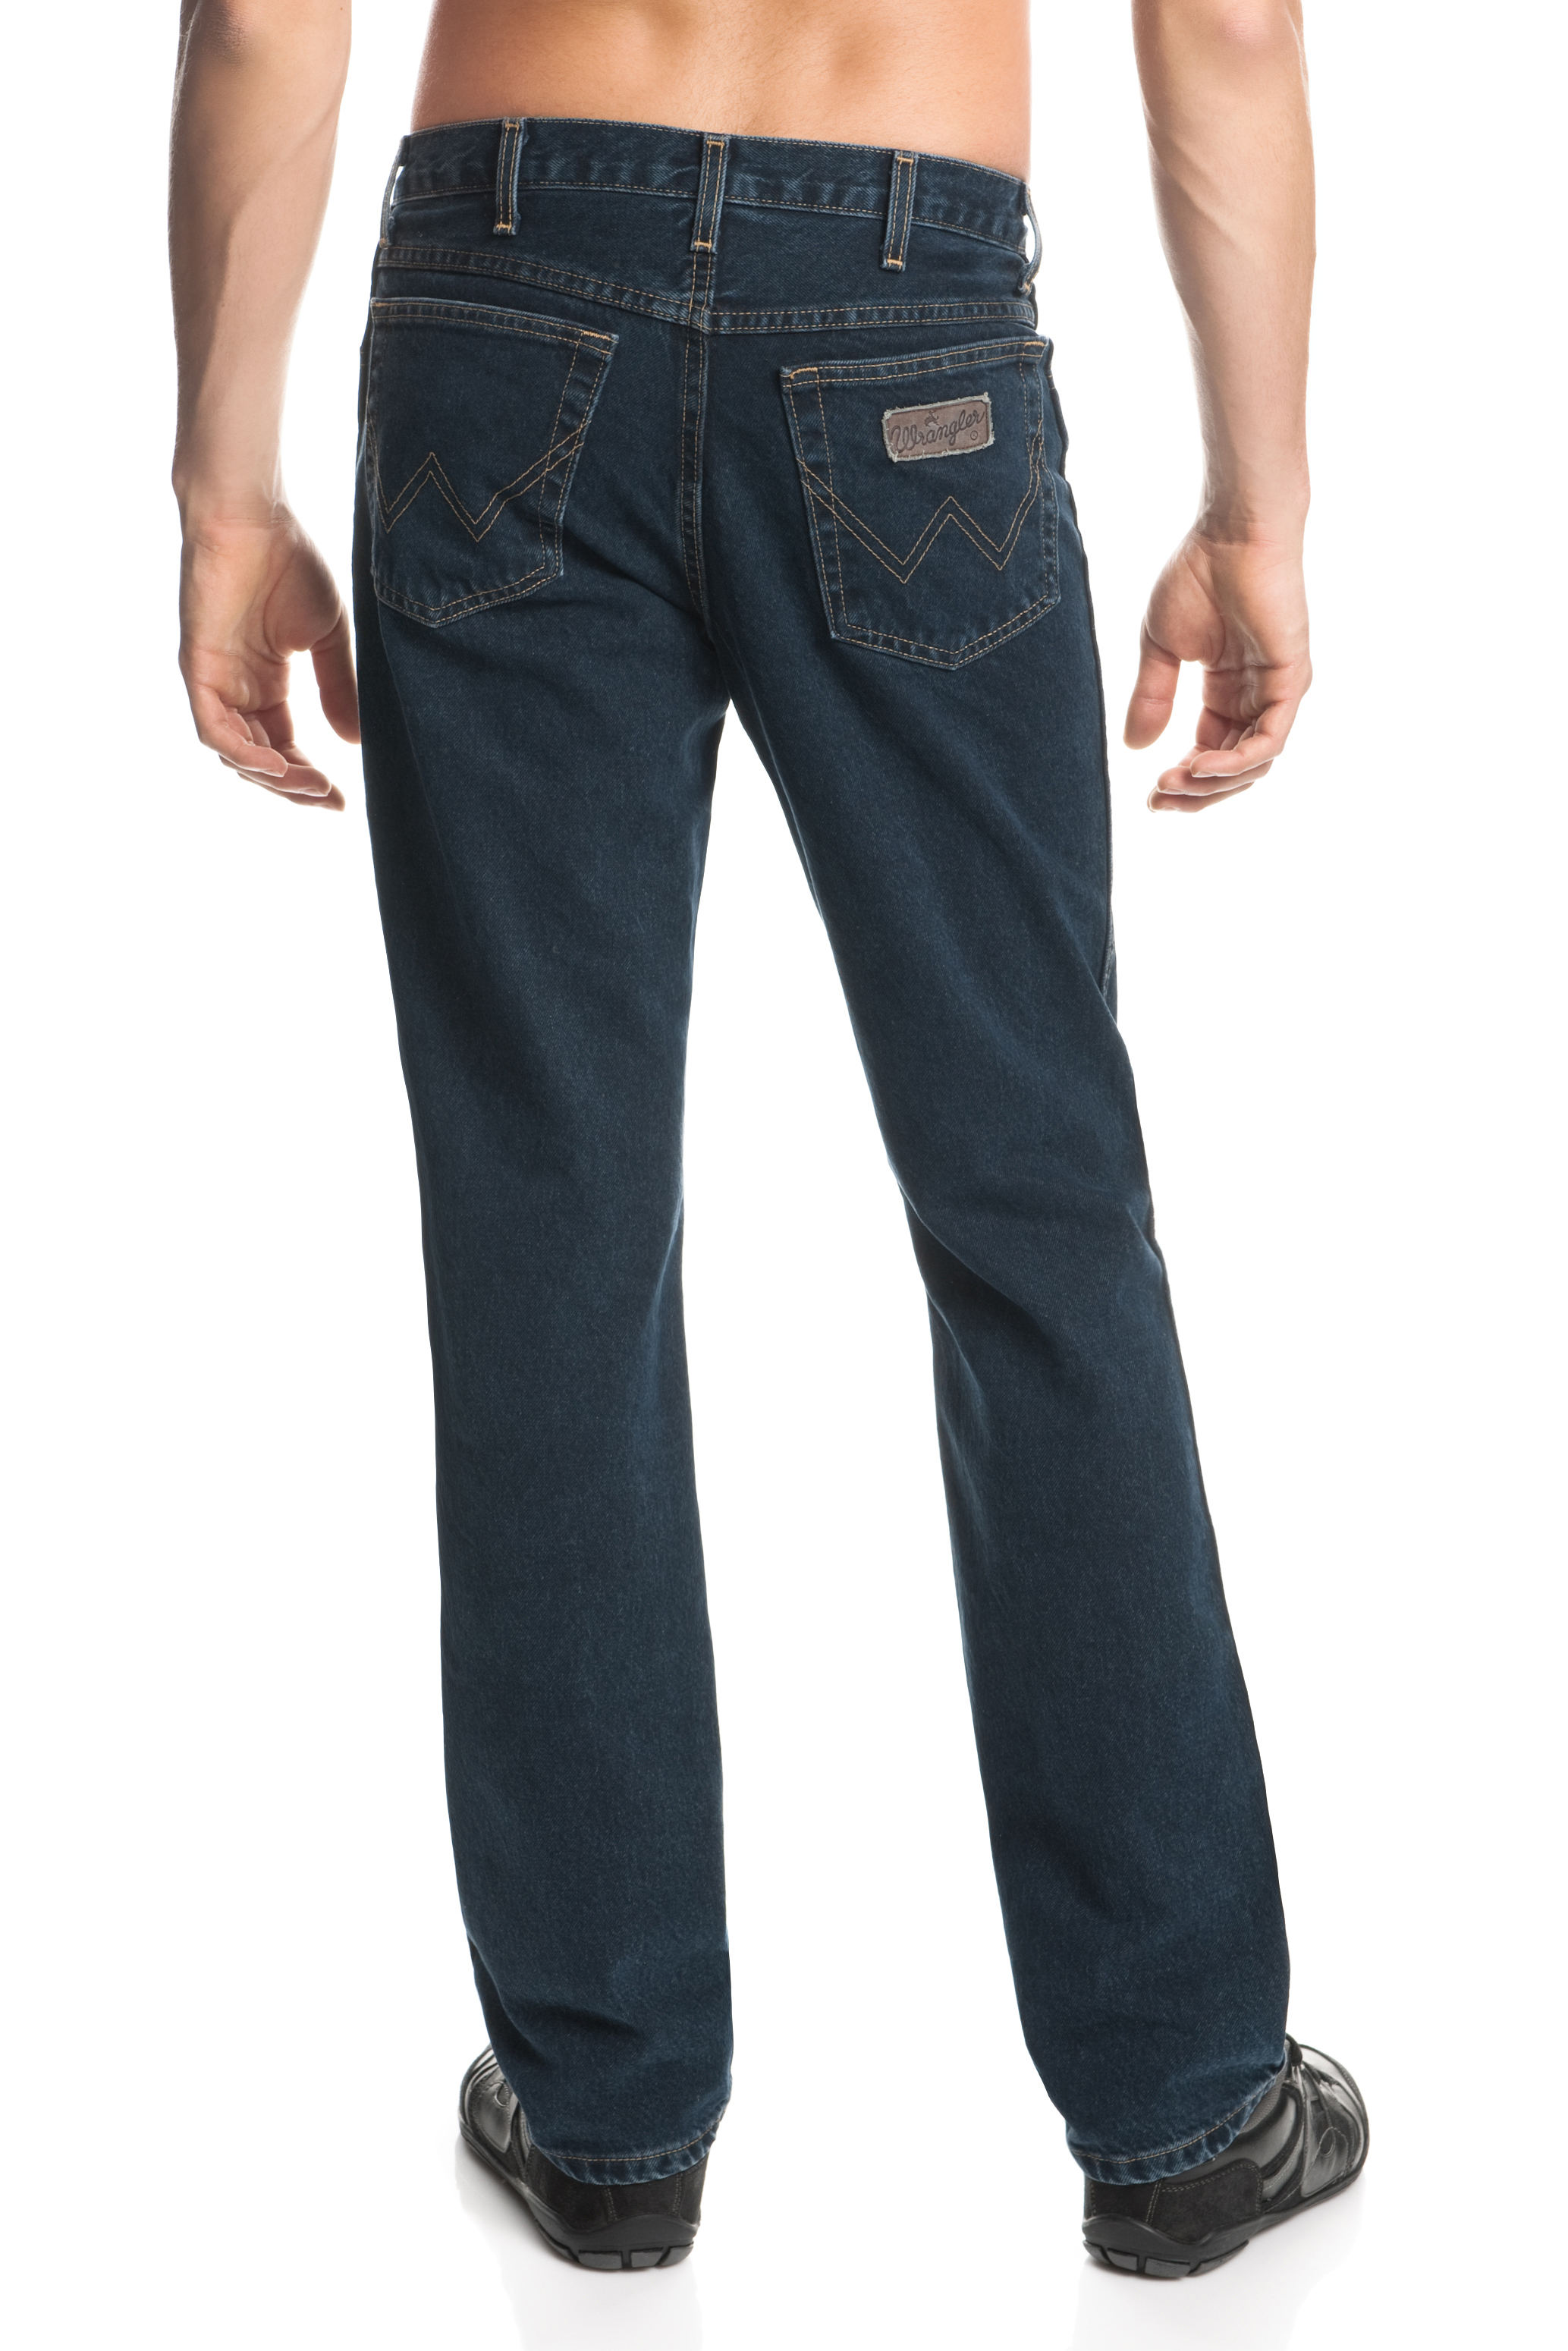 Wrangler Texas Stretch blueblack